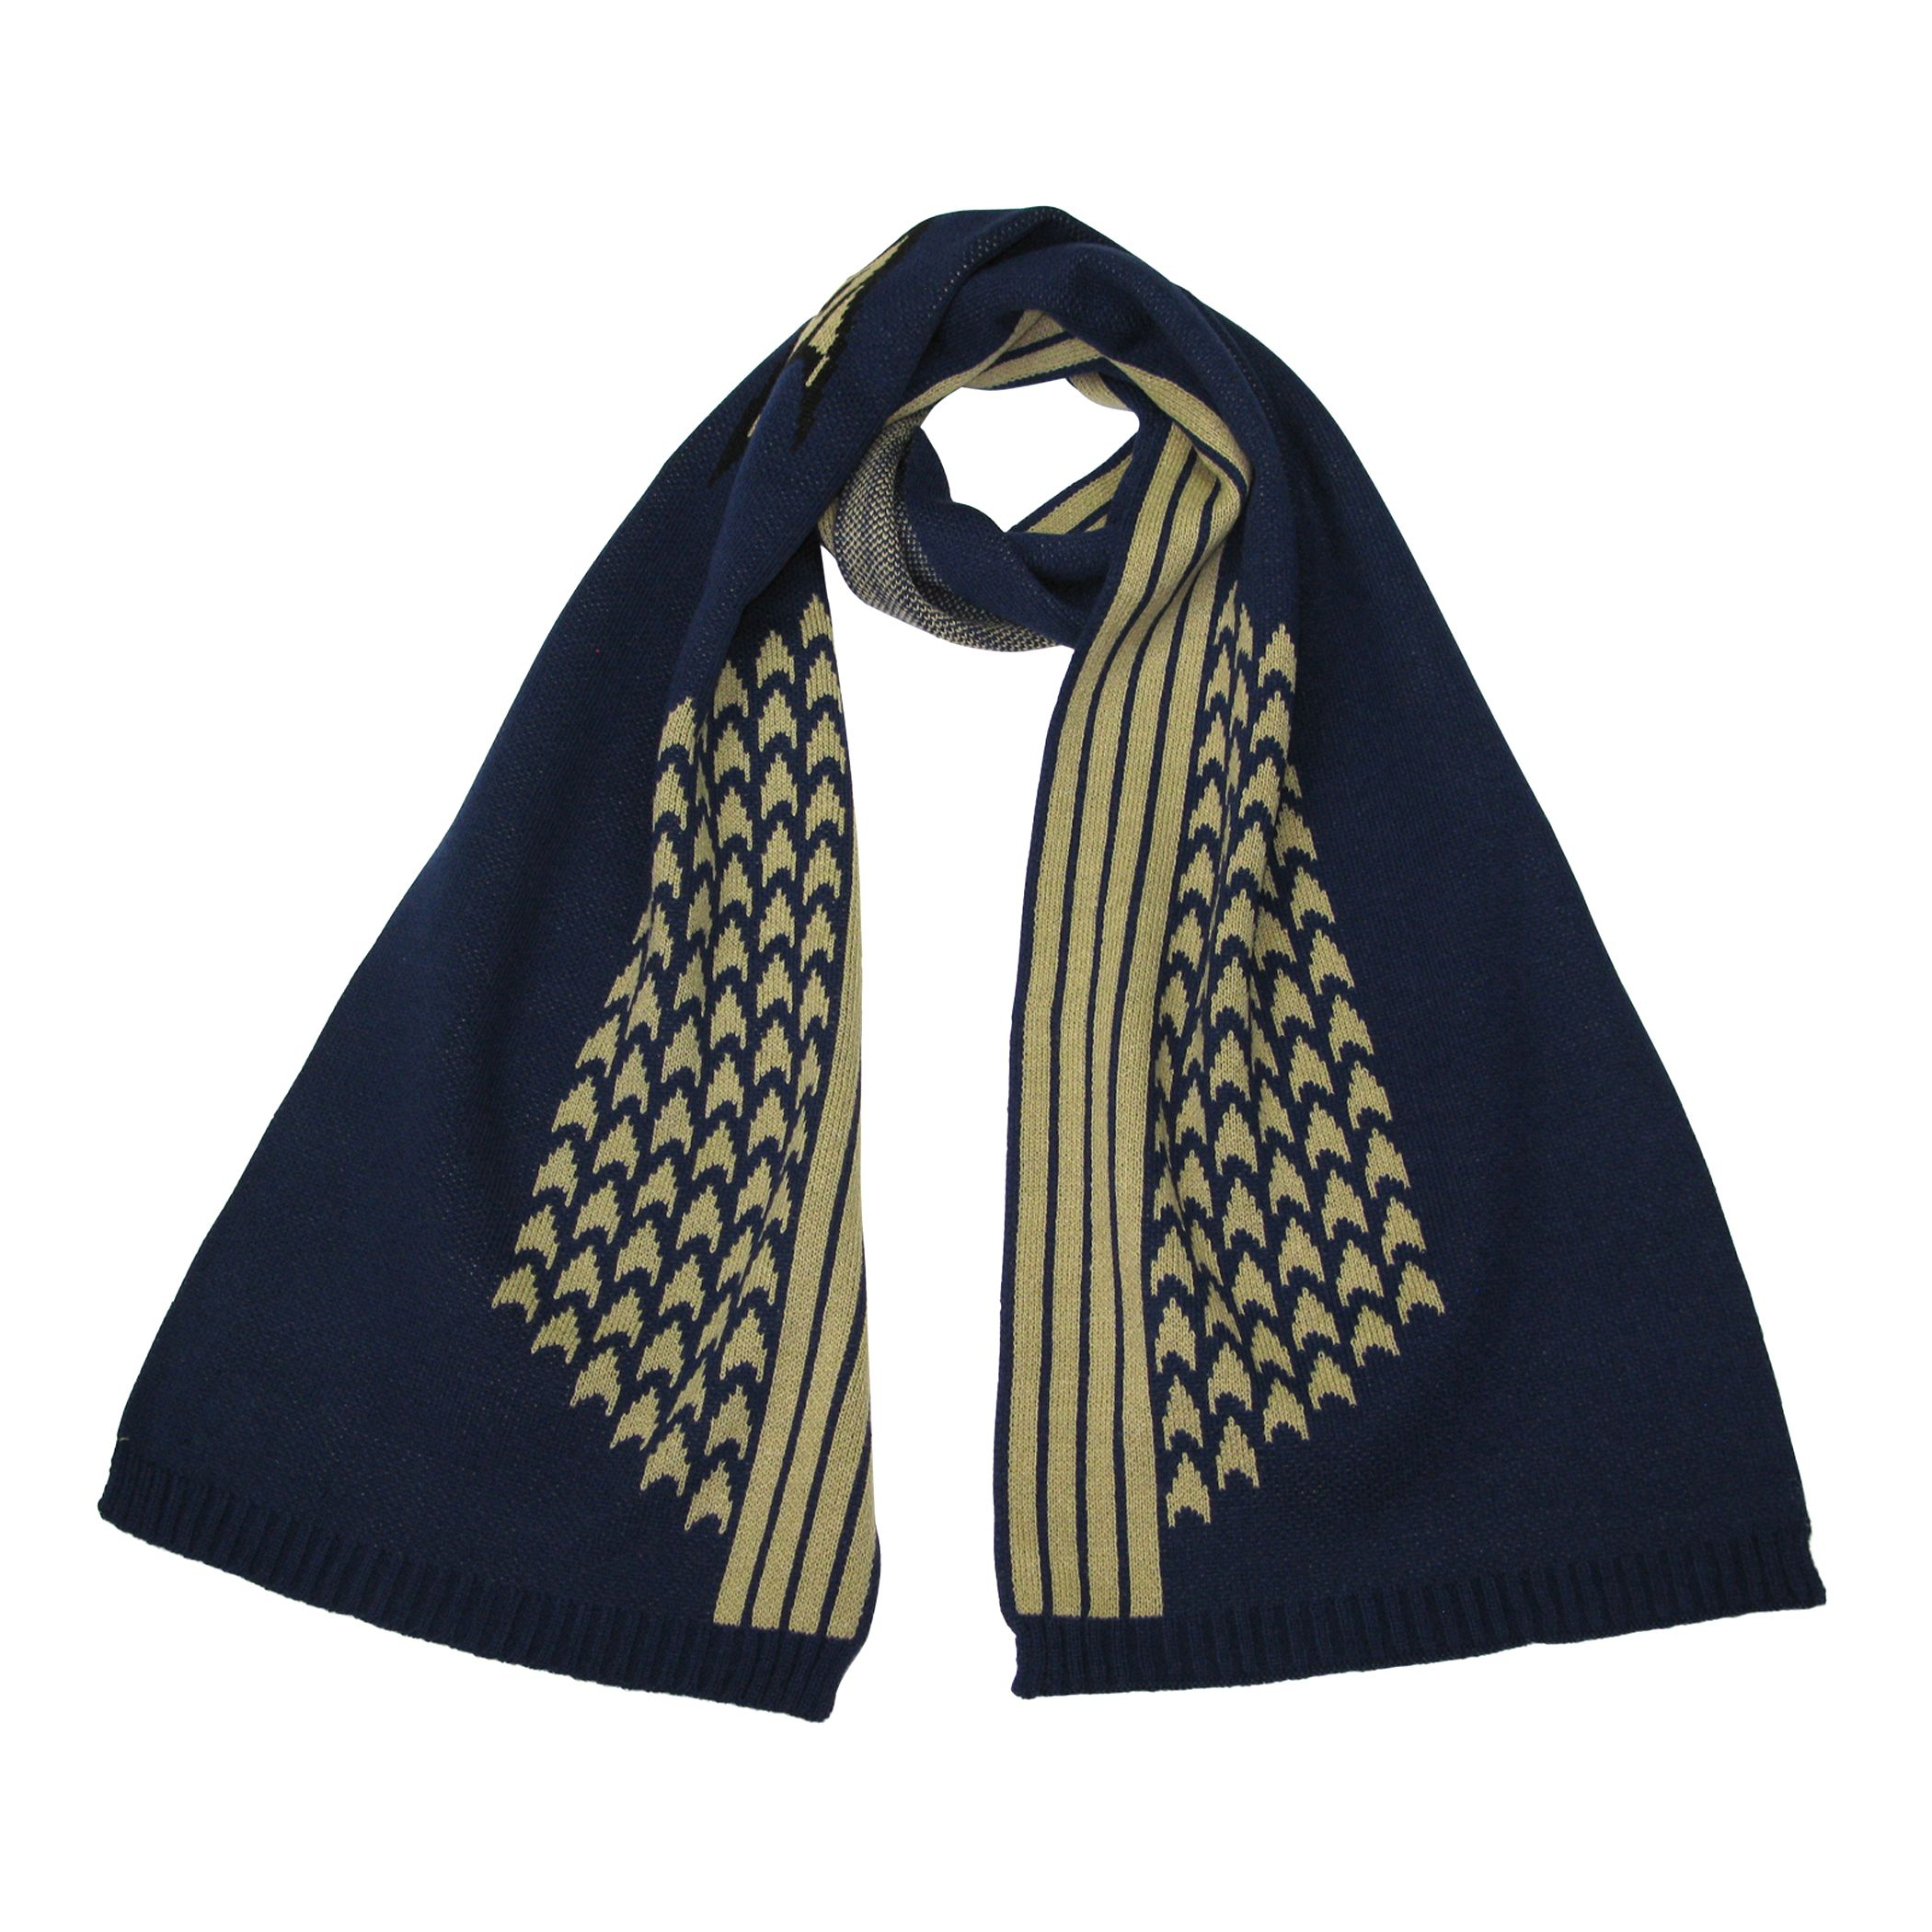 Official star trek discovery scarf click here to know more